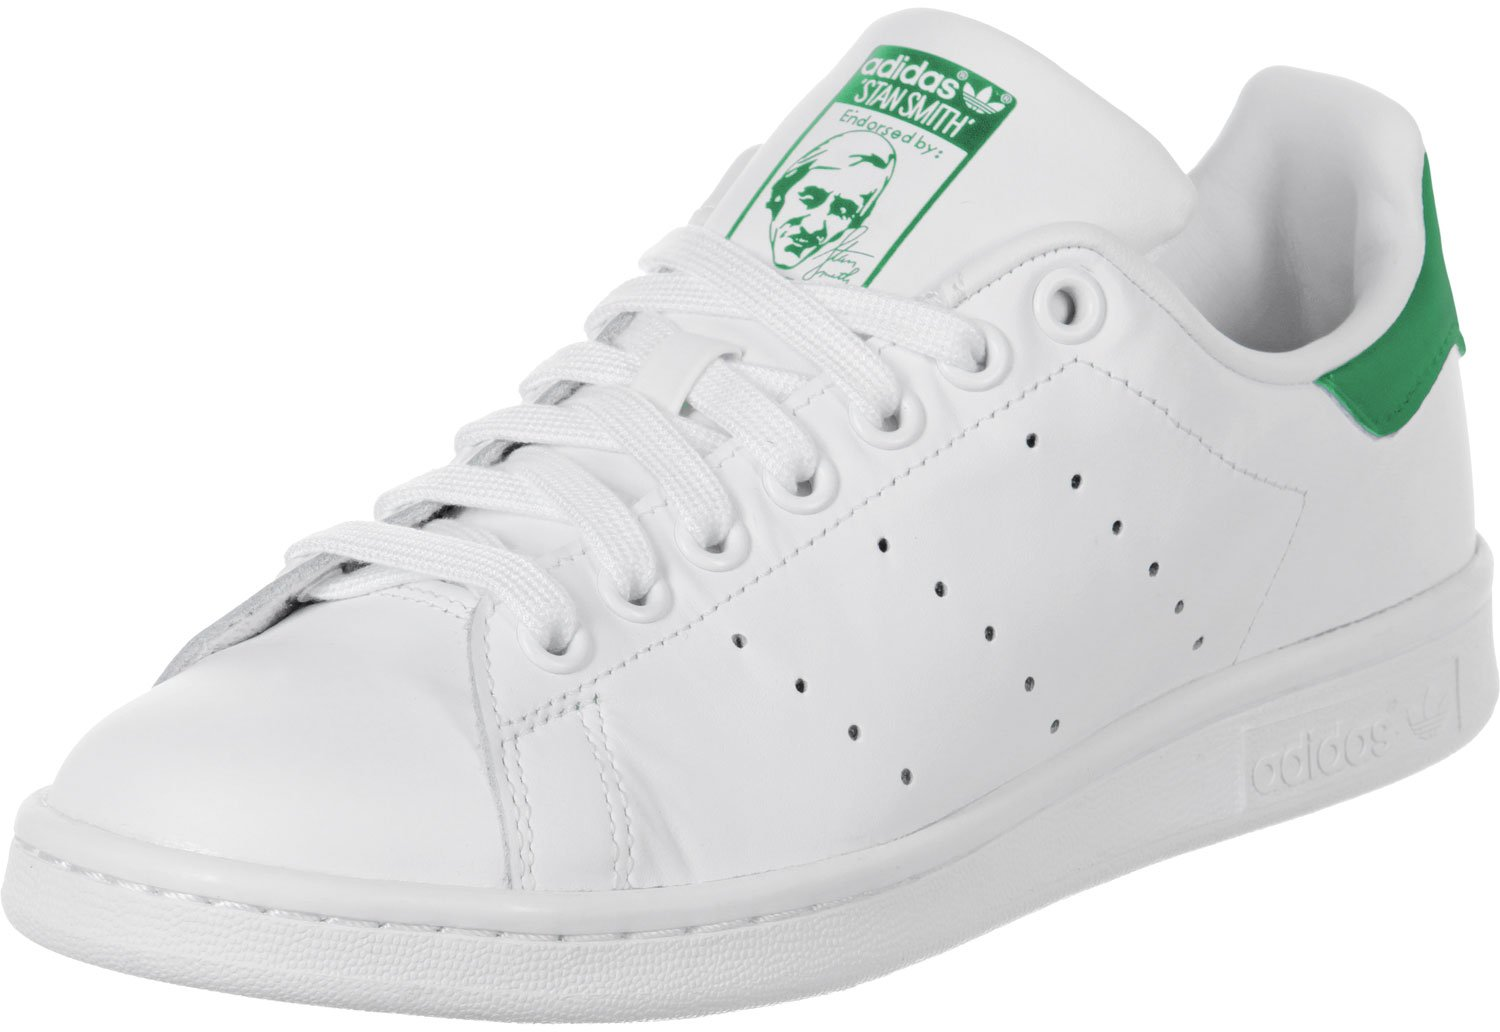 new product 53b54 2714d adidas Stan Smith J Scarpe per Bambini, Ragazza Adidas Originals B32703  ingrandisci